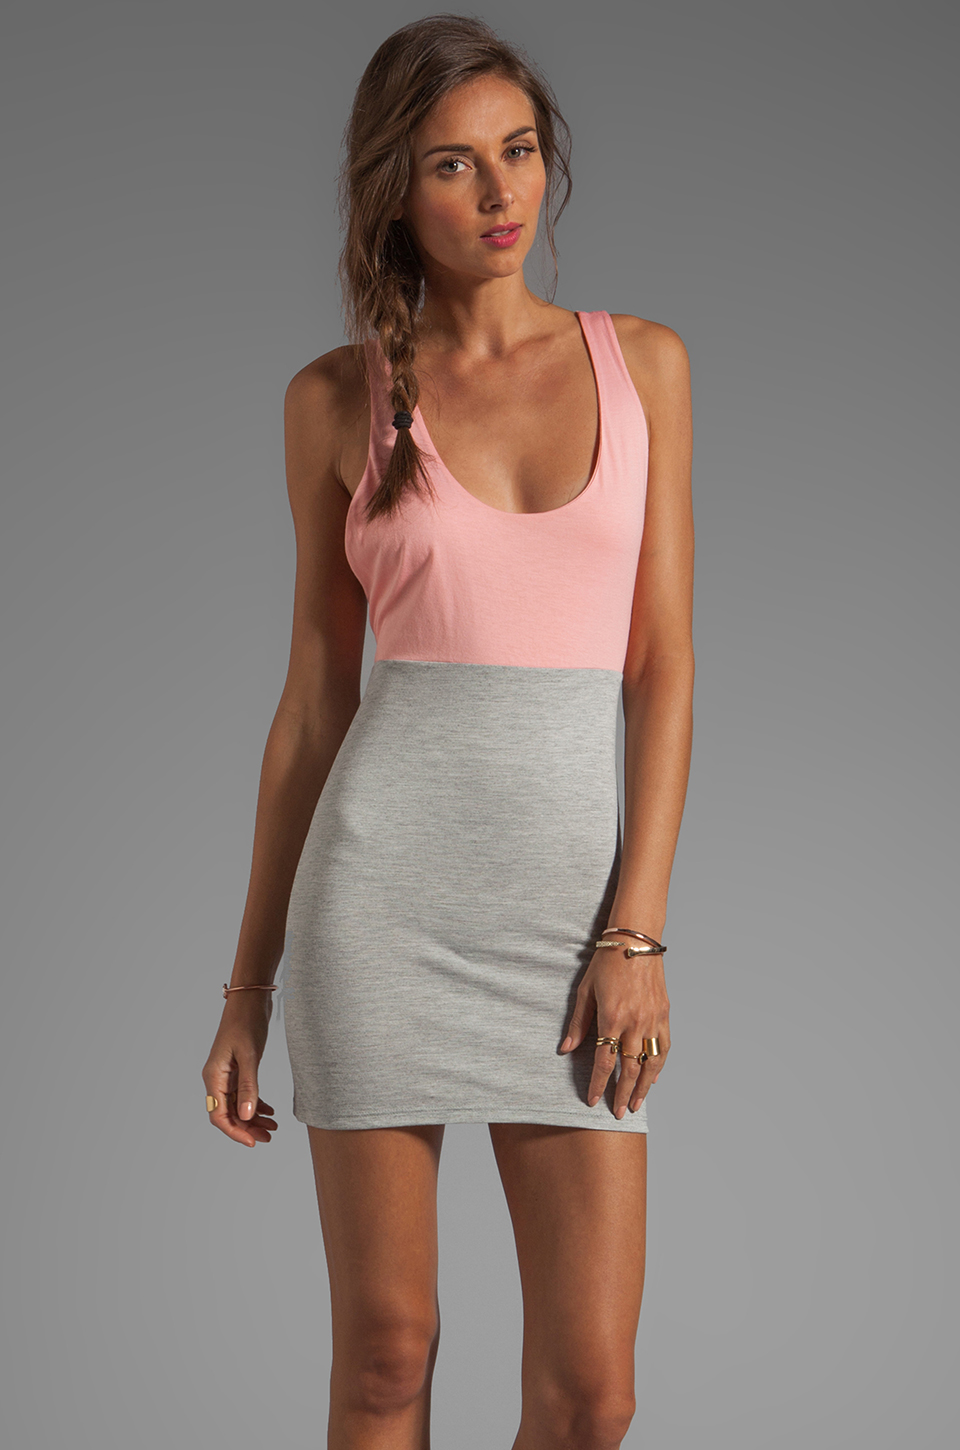 Blue Life Racer Back Dress in Heather/Apricot